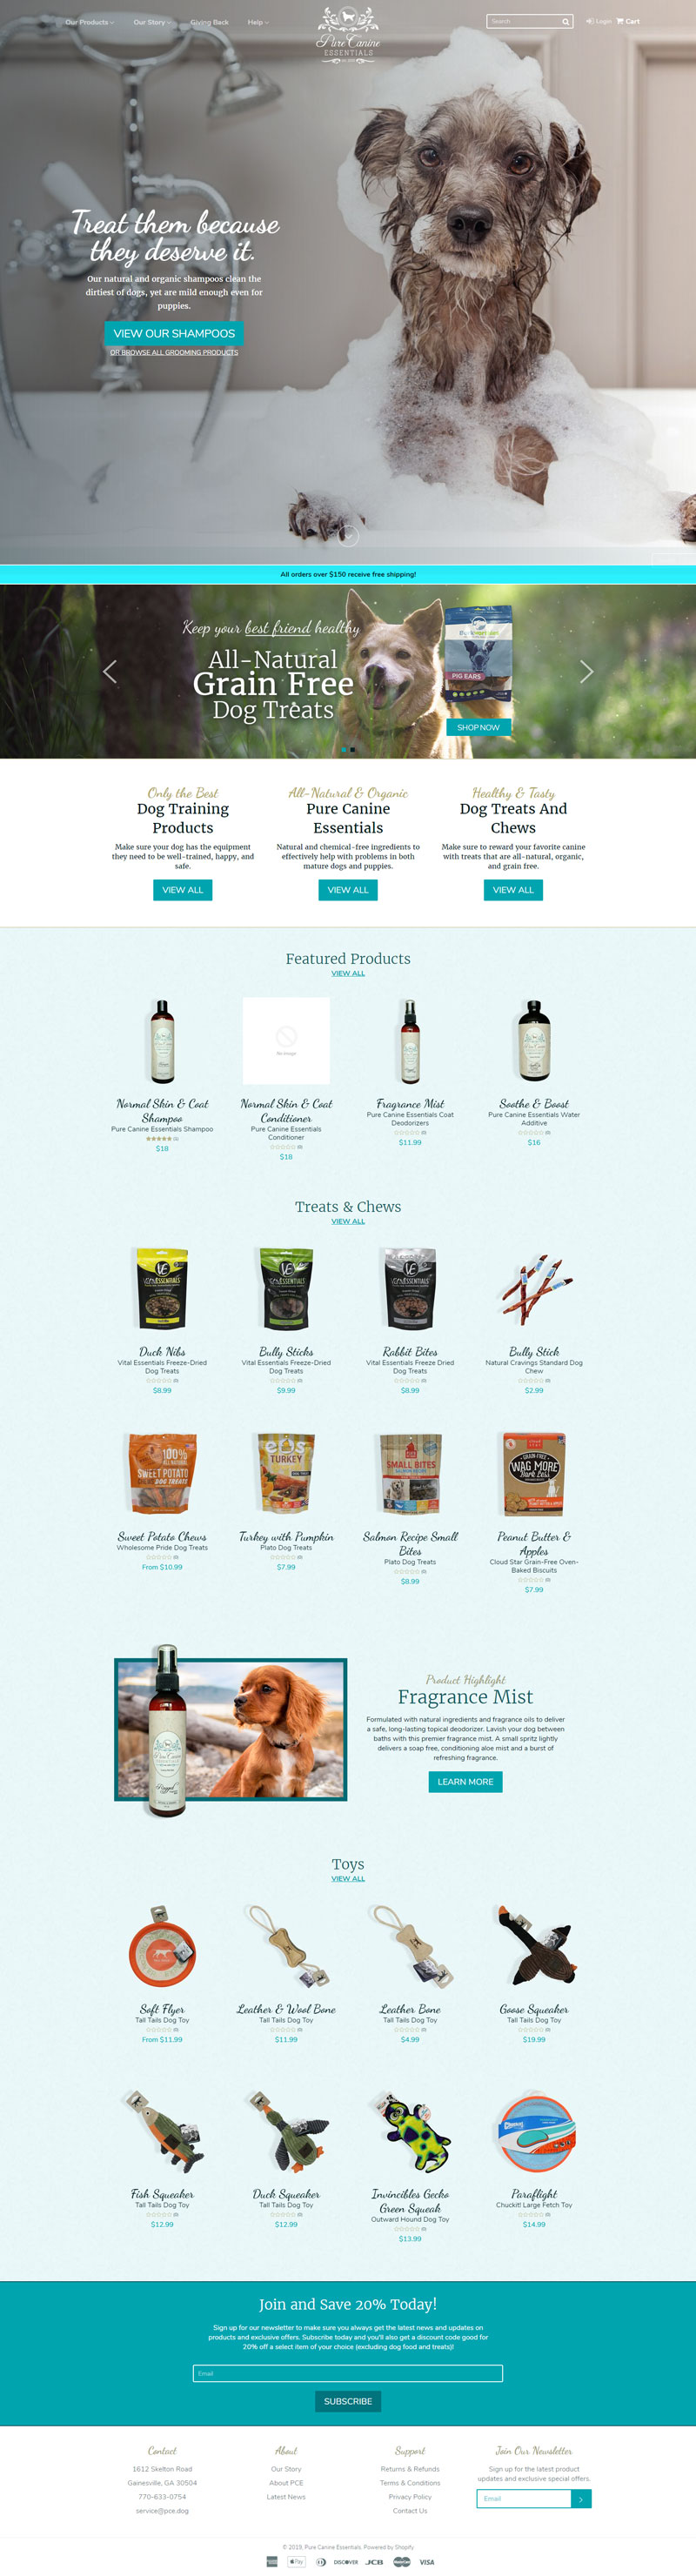 Pure Canine Essentials. Ecommerce mockup for Shopify-based website selling premium dog treats and grooming products.